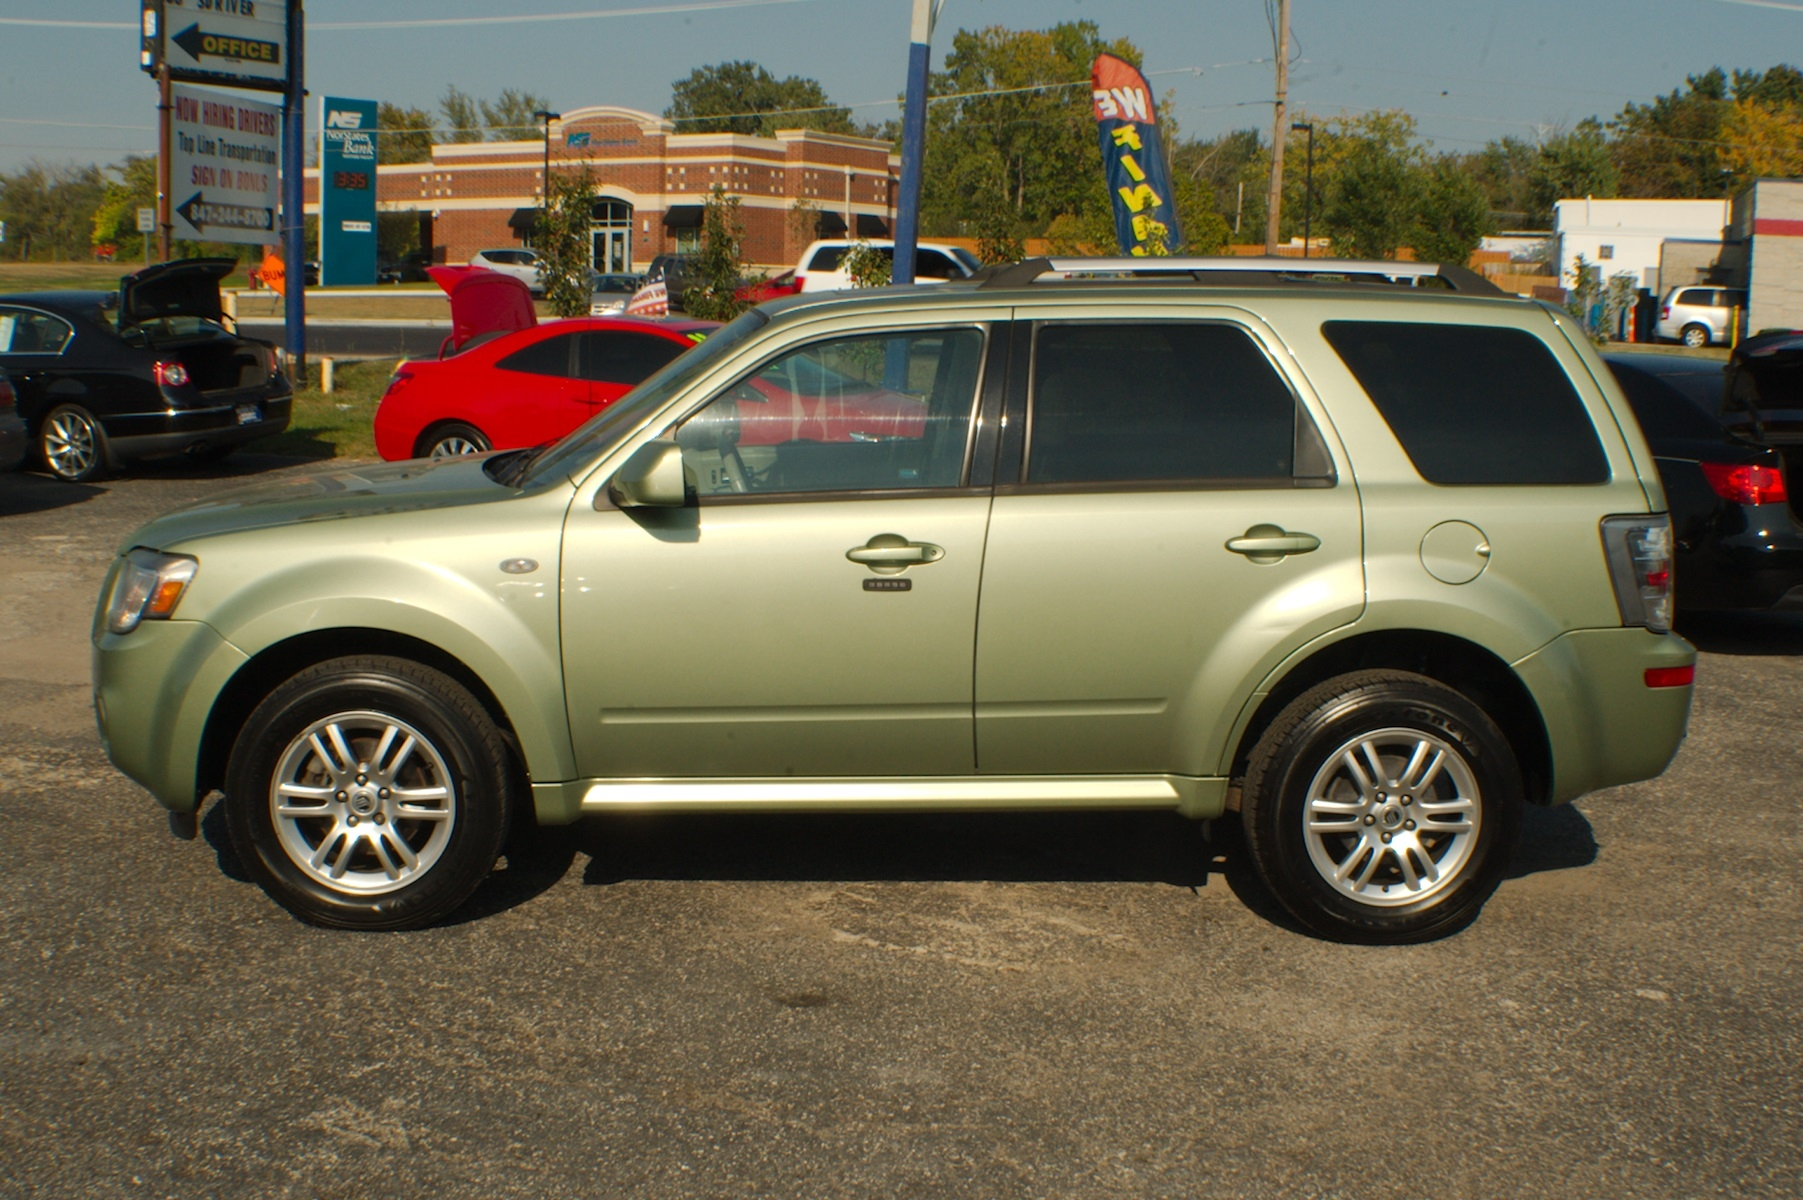 2009 Mercury Mariner Green SUV Used Car Sale Bannockburn Barrington Beach Park